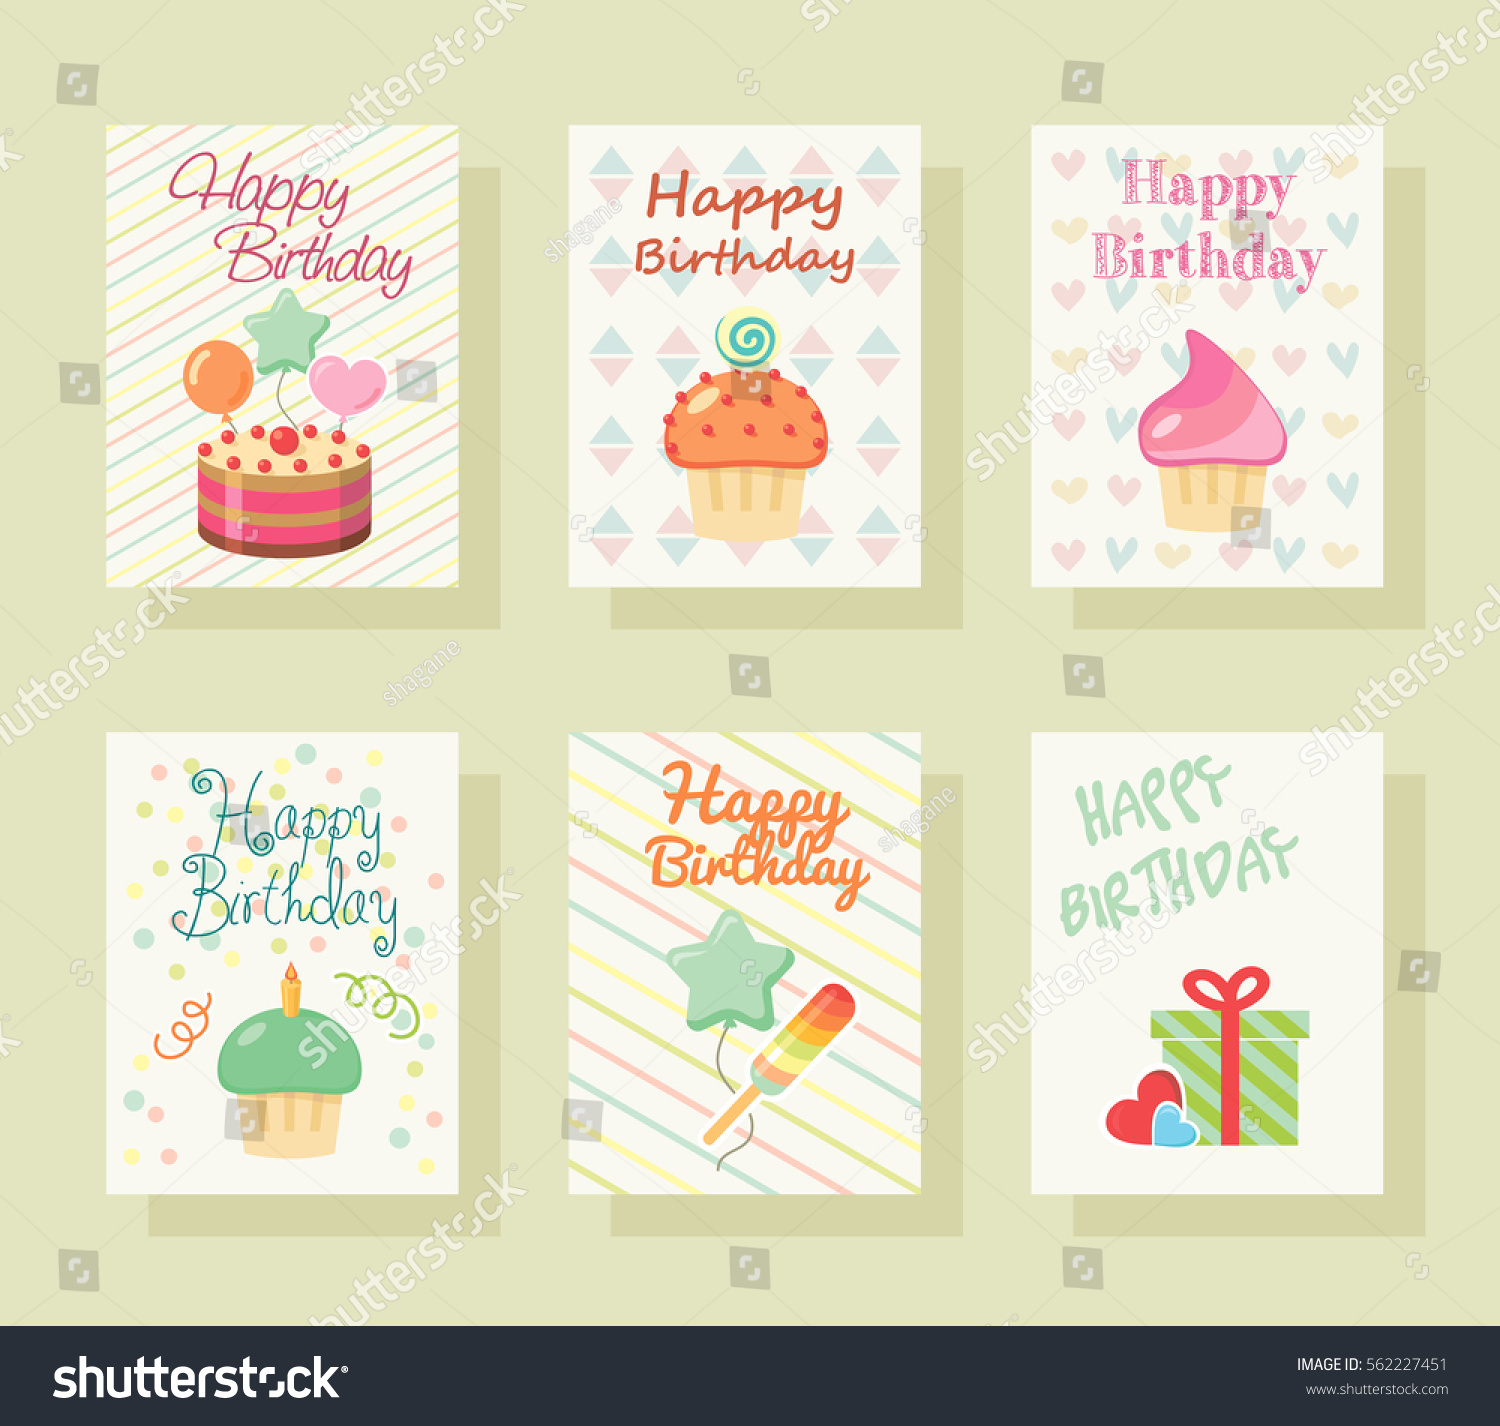 Happy birthday invitation card baby greeting stock vector happy birthday invitation card baby greeting postcard happy birthday background design template stopboris Gallery